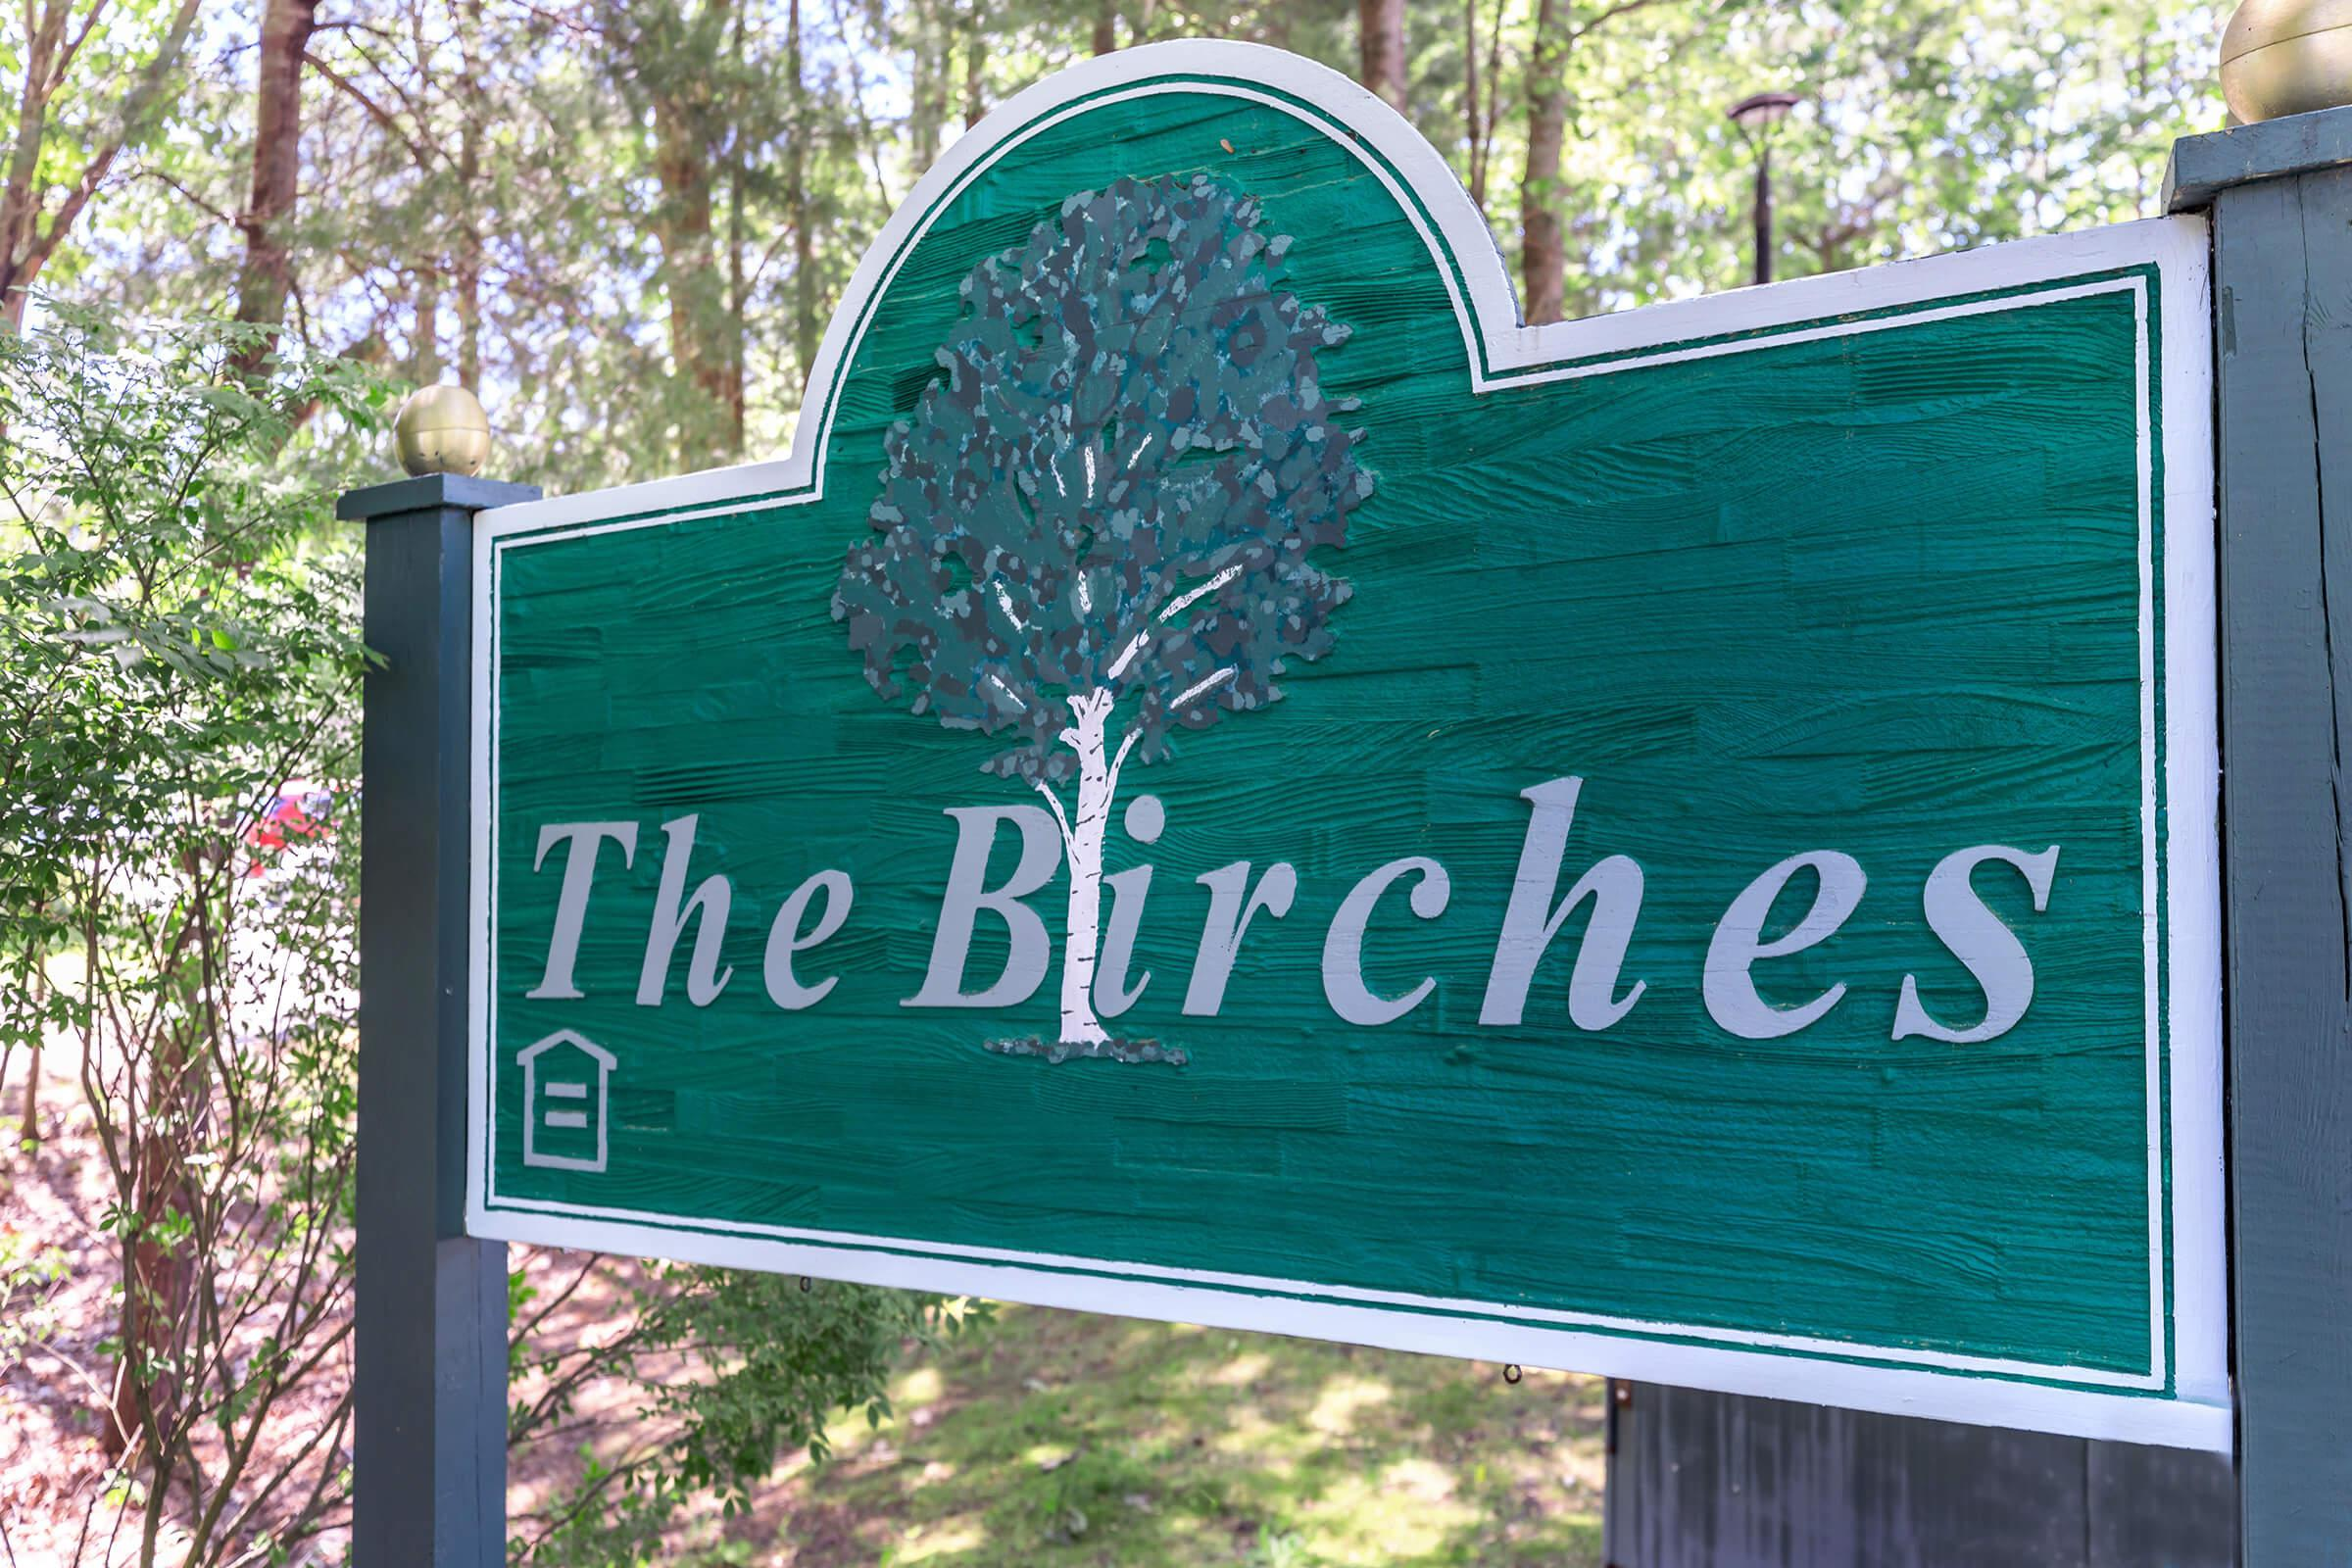 a green sign with white text